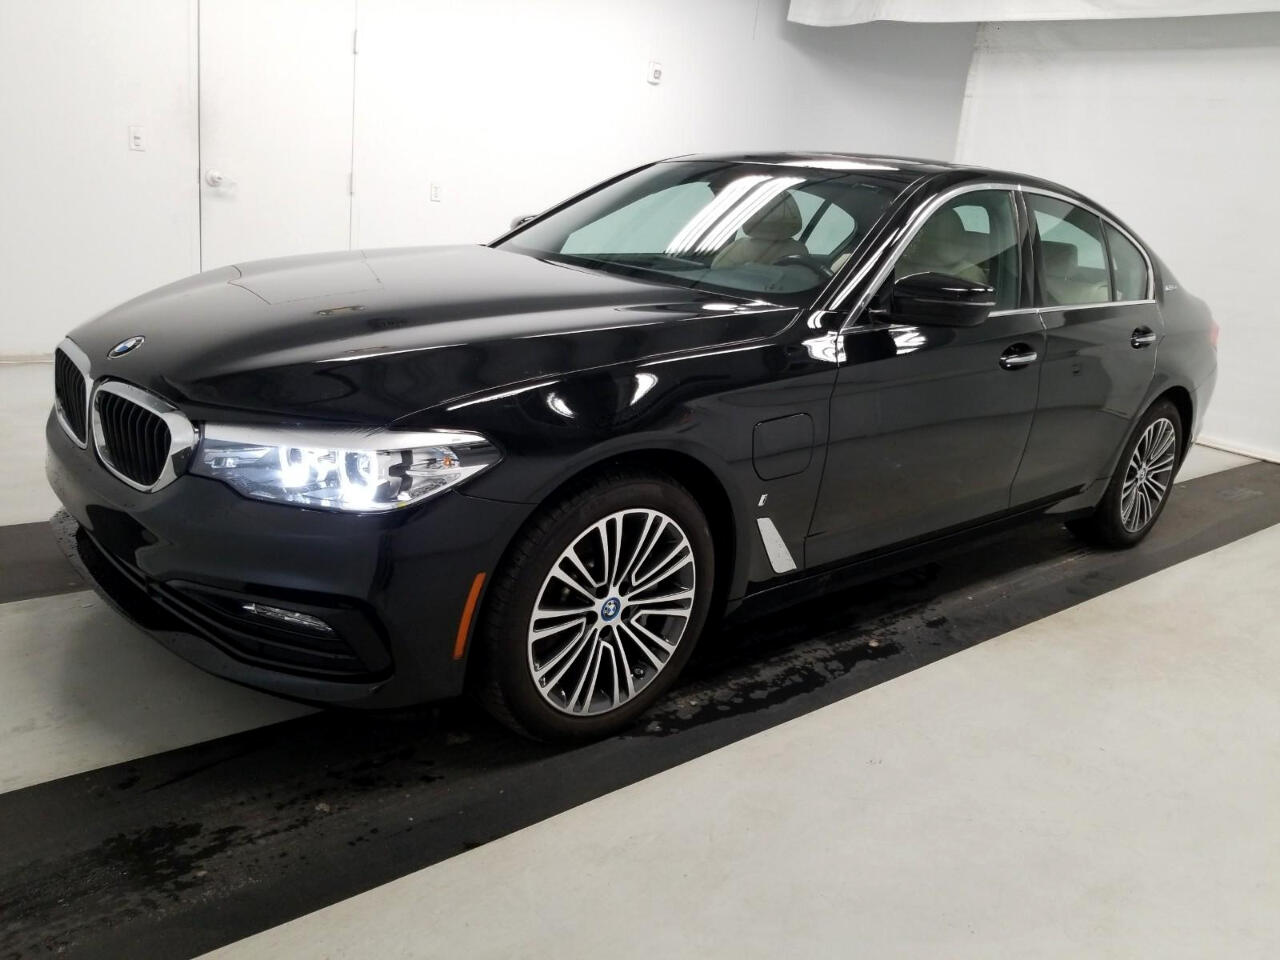 BMW 5 Series 530e iPerformance Plug-In Hybrid 2018